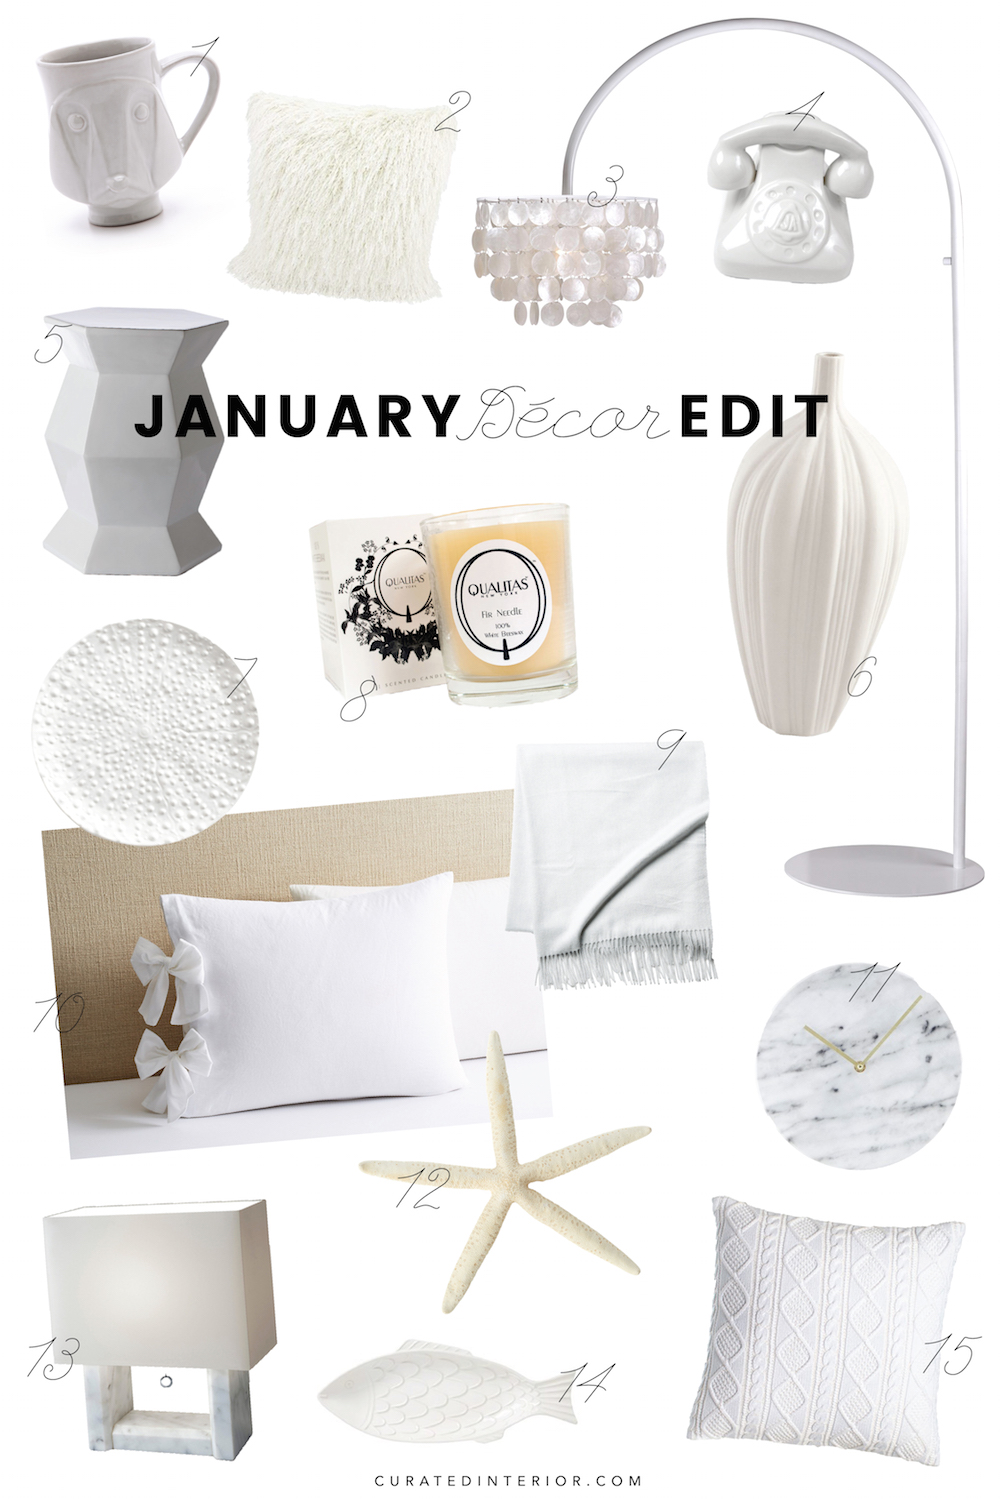 Our Decor Picks for this January!